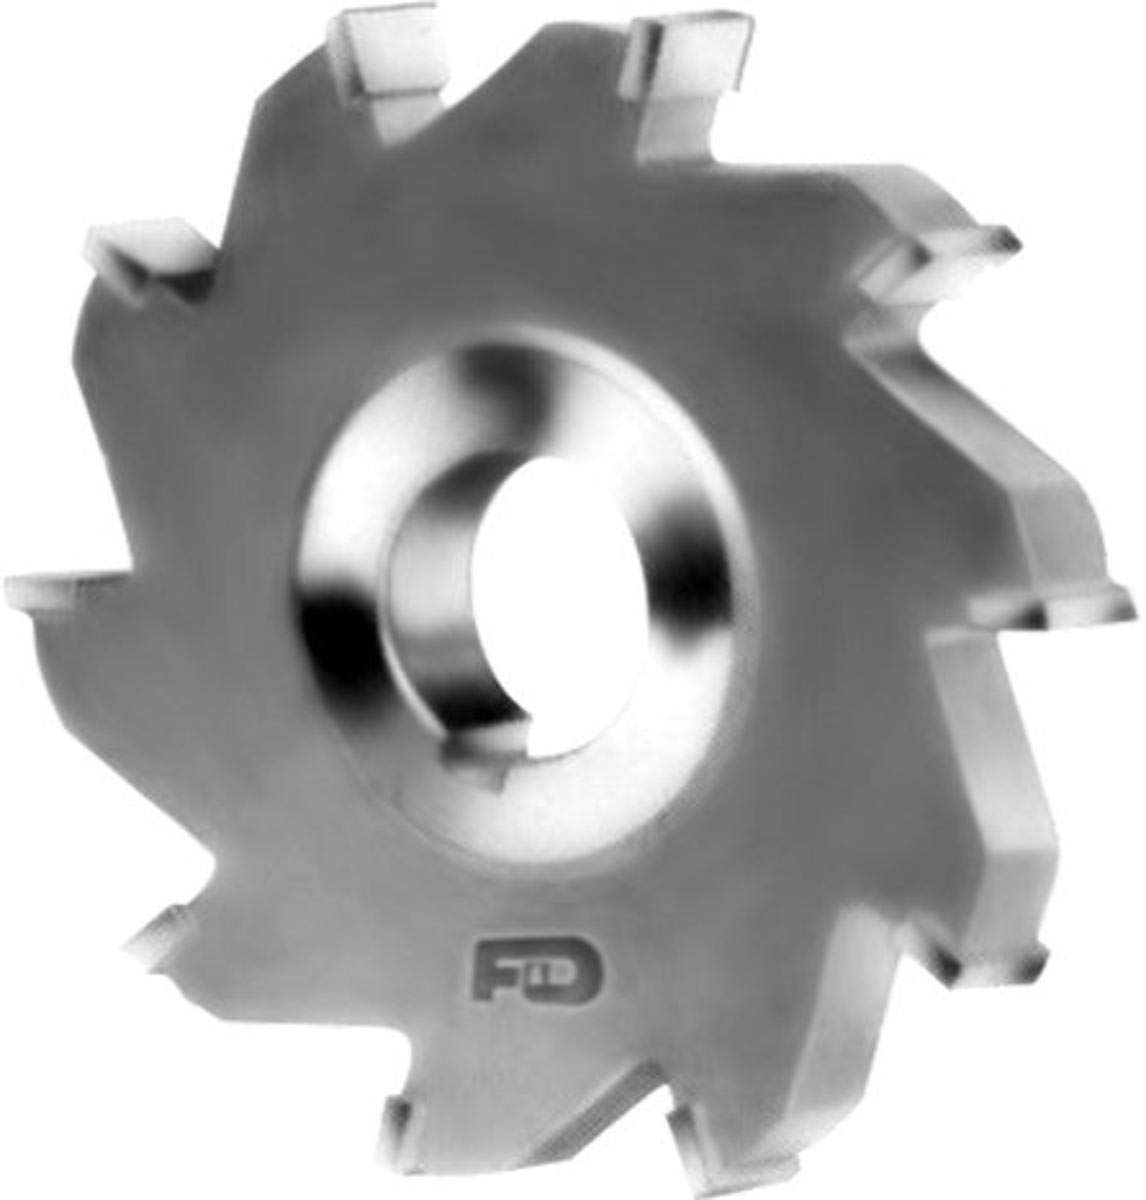 F&D Tool Company 14005-AC3085 Carbide Tipped Slitting Saw, Standard Tooth, Non-Ferrous, 1